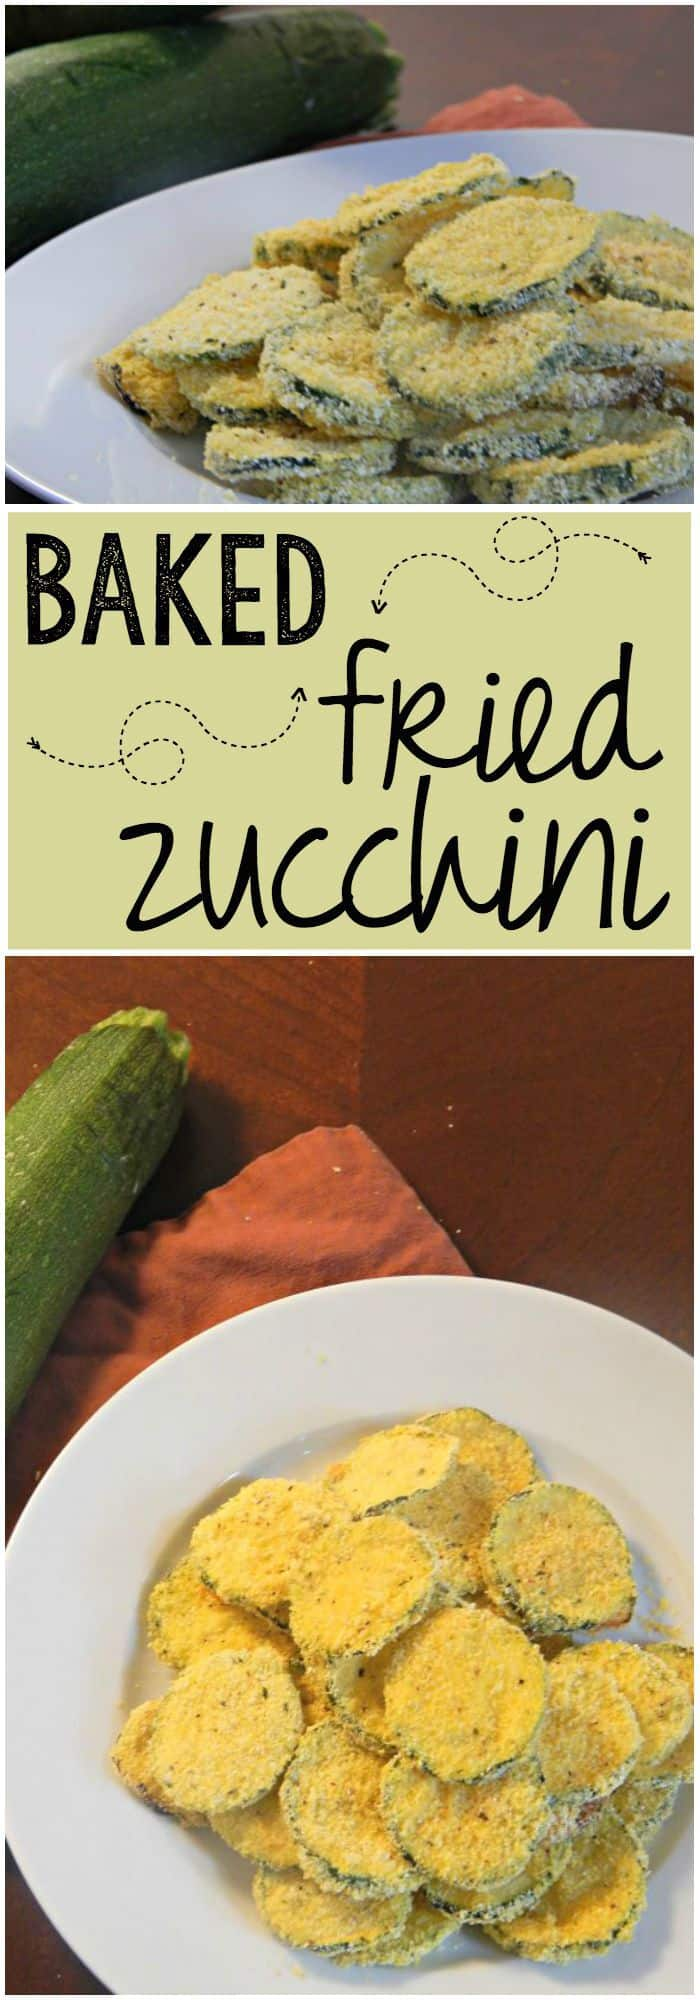 A healthy way to fry zucchini - Oh my yum